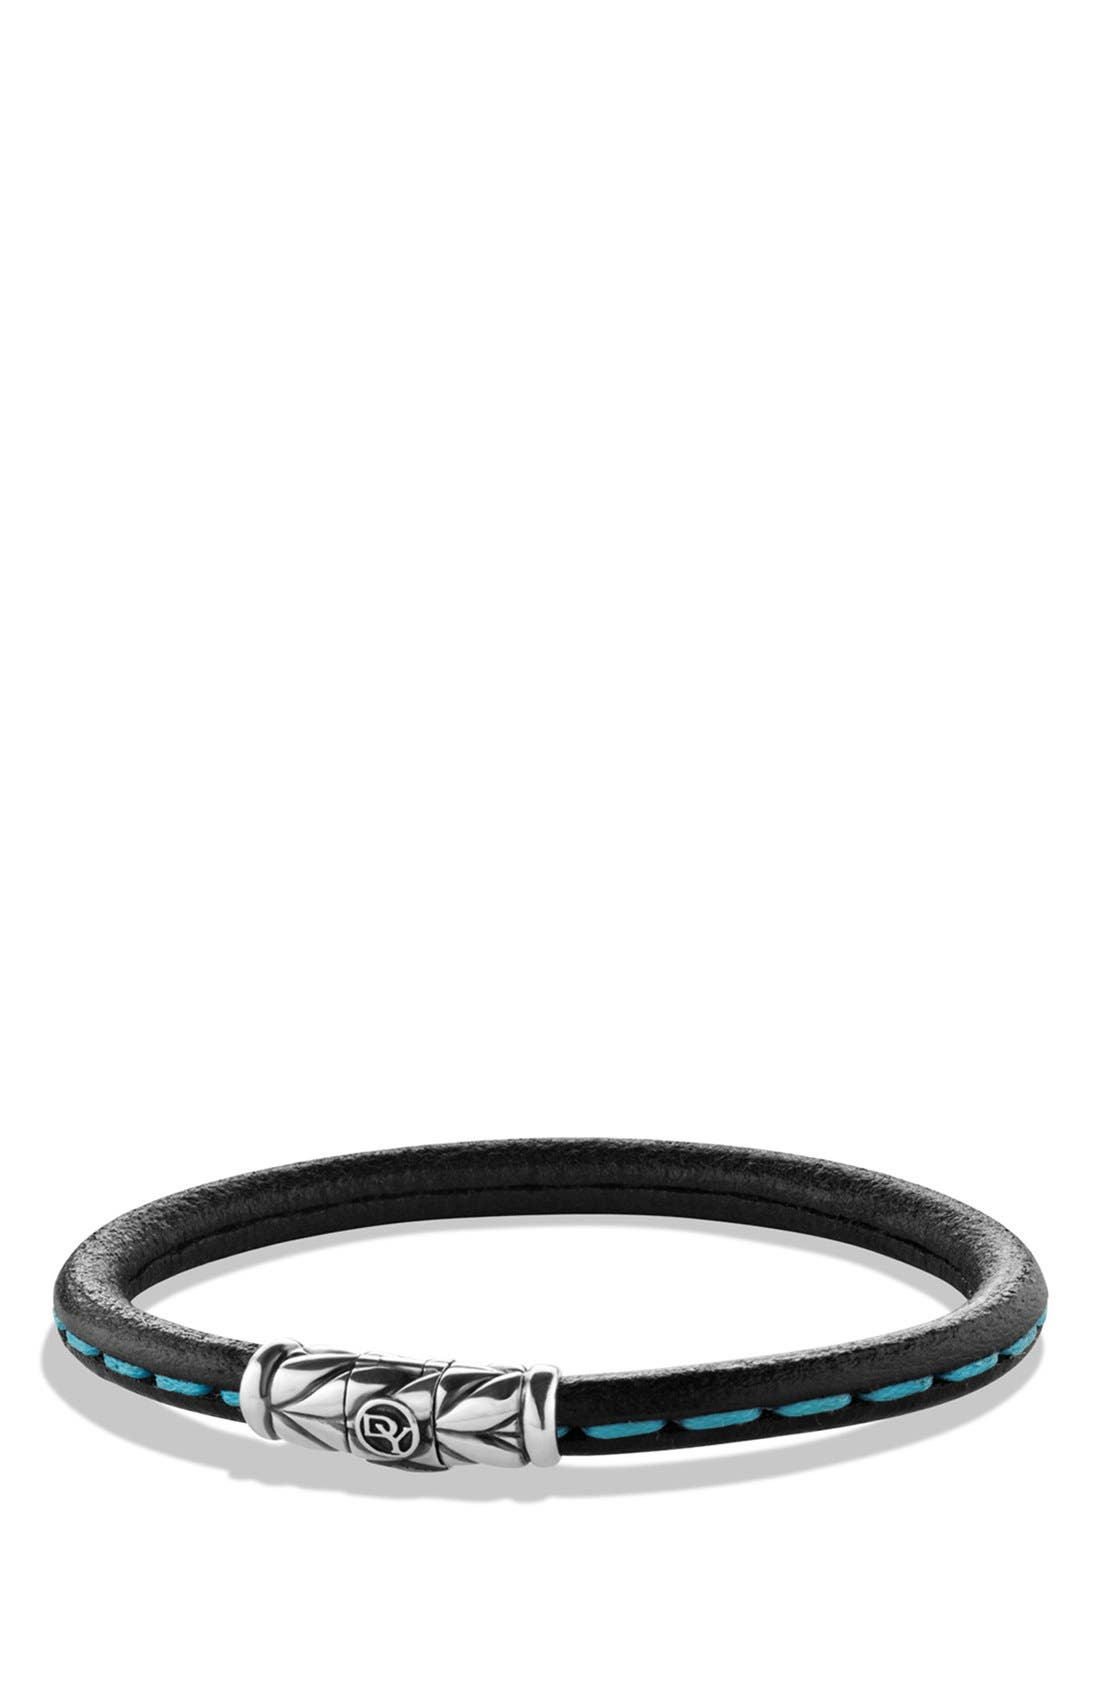 Main Image - David Yurman 'Chevron' Leather Bracelet